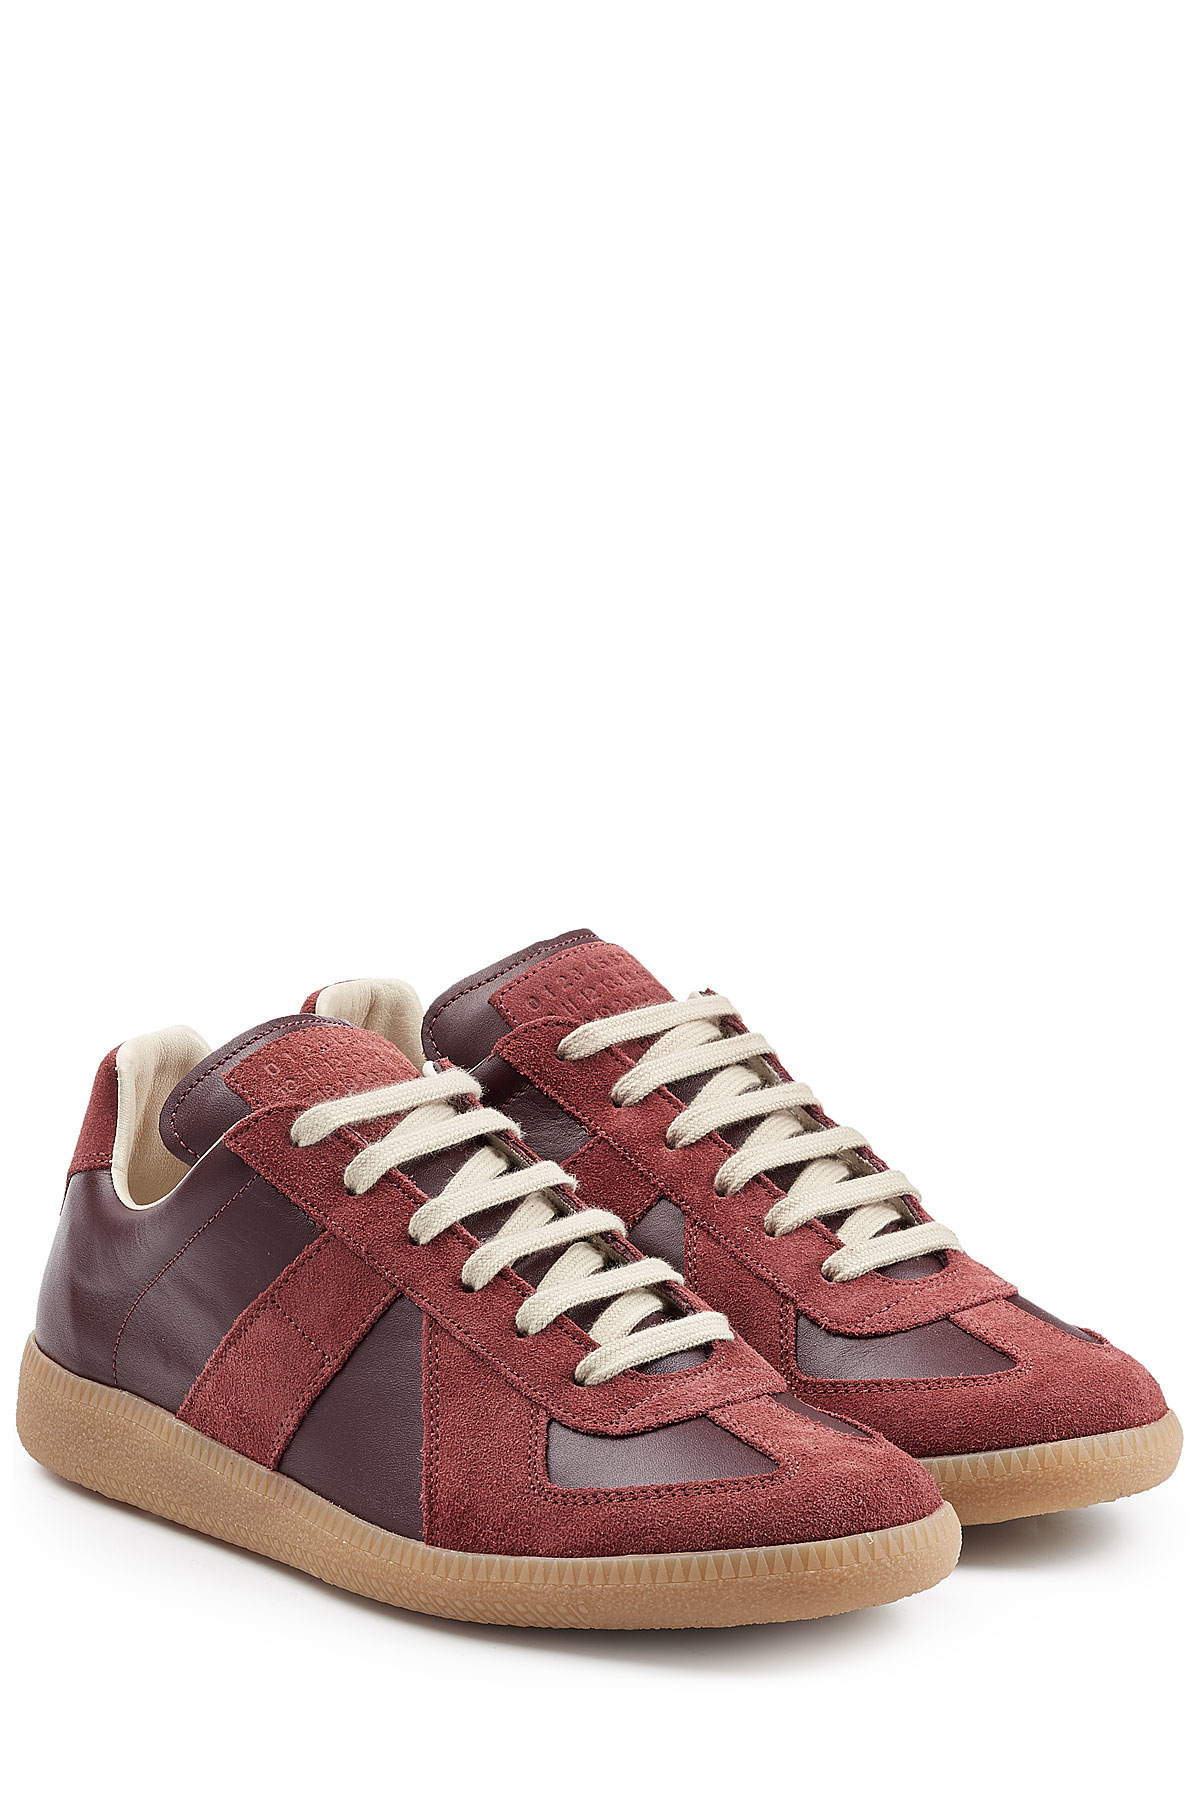 Lyst maison margiela future suede and leather low top for Maison